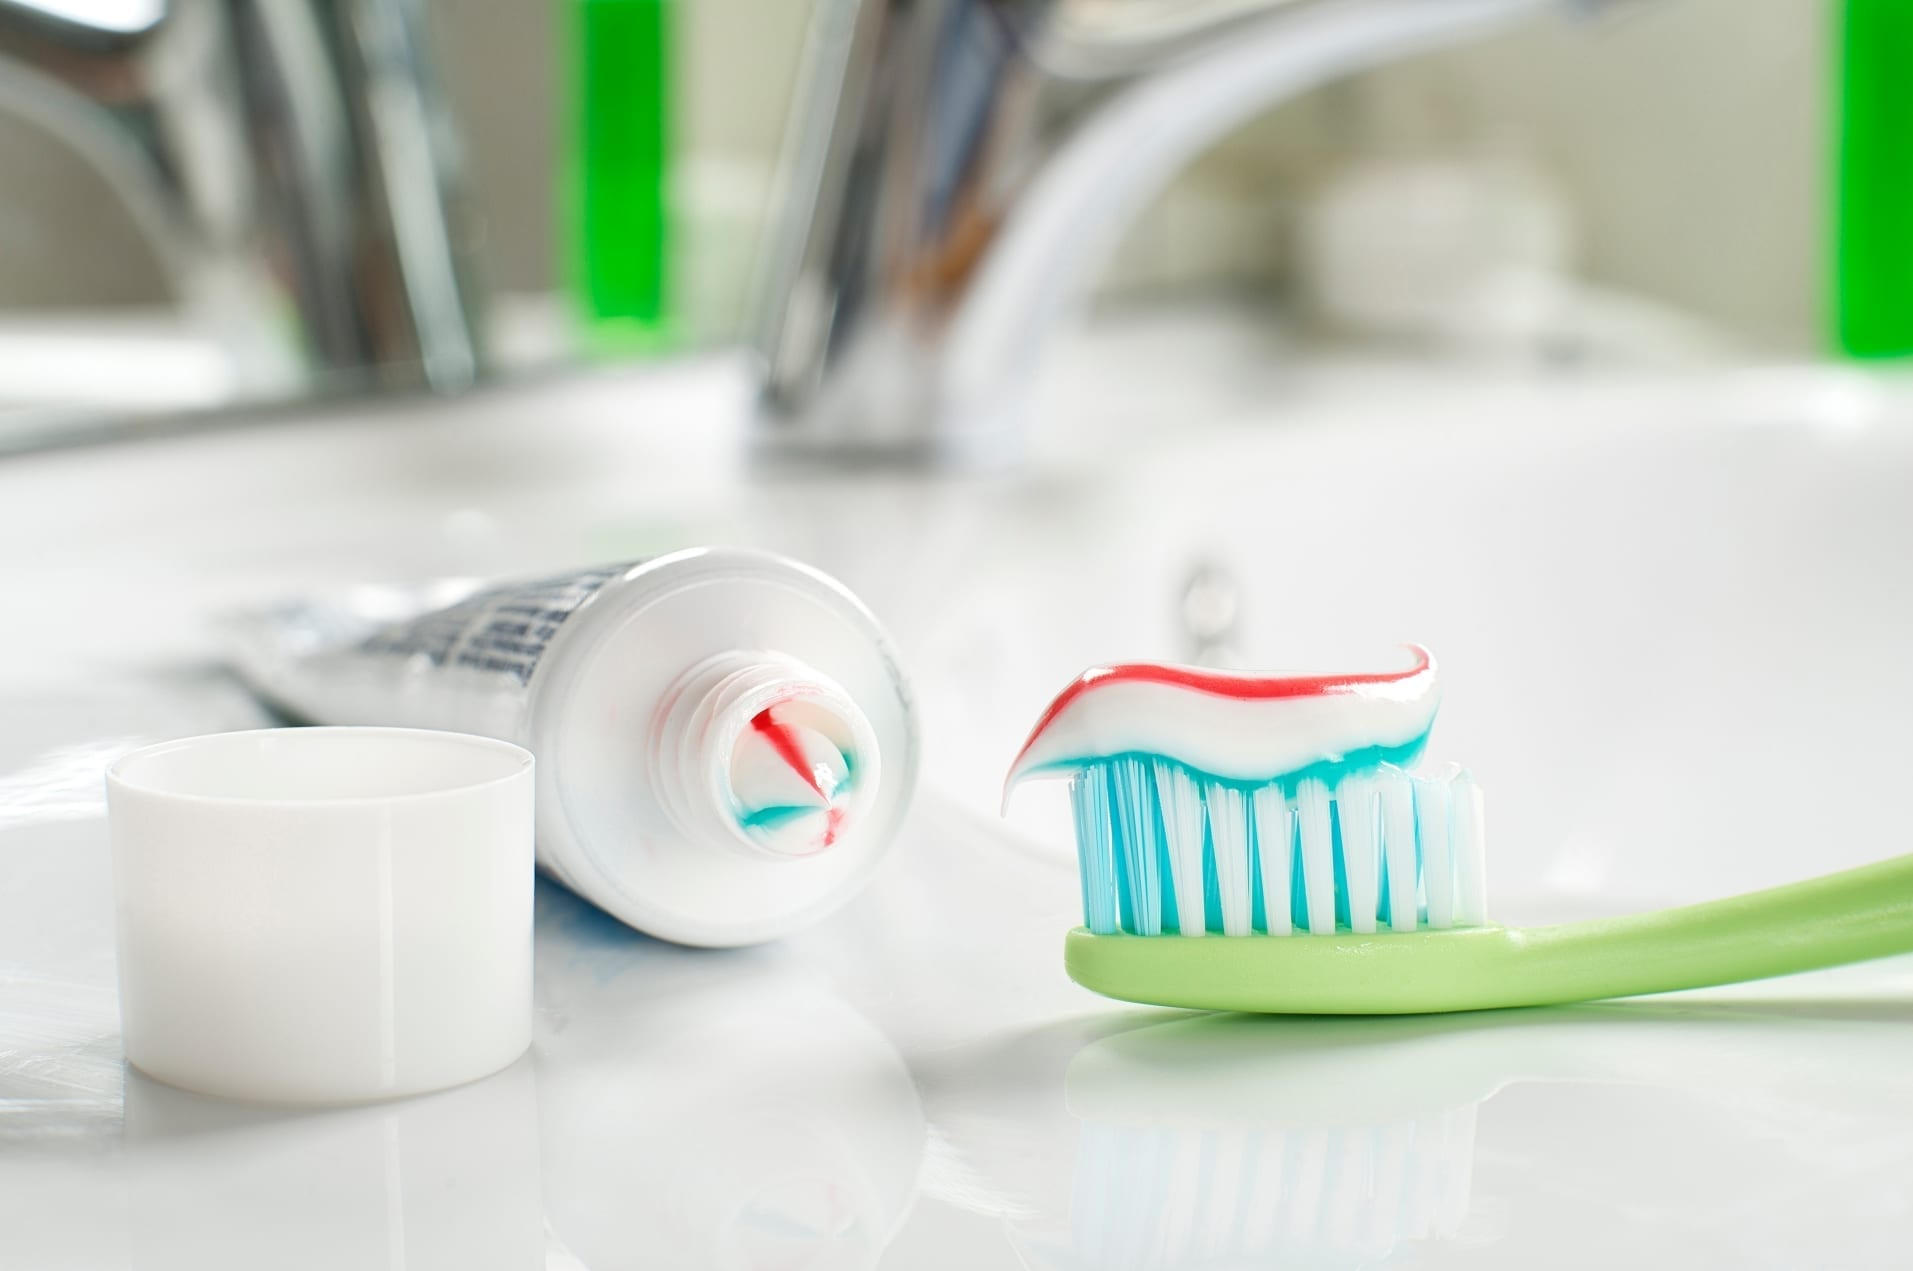 fluoride in toothpaste